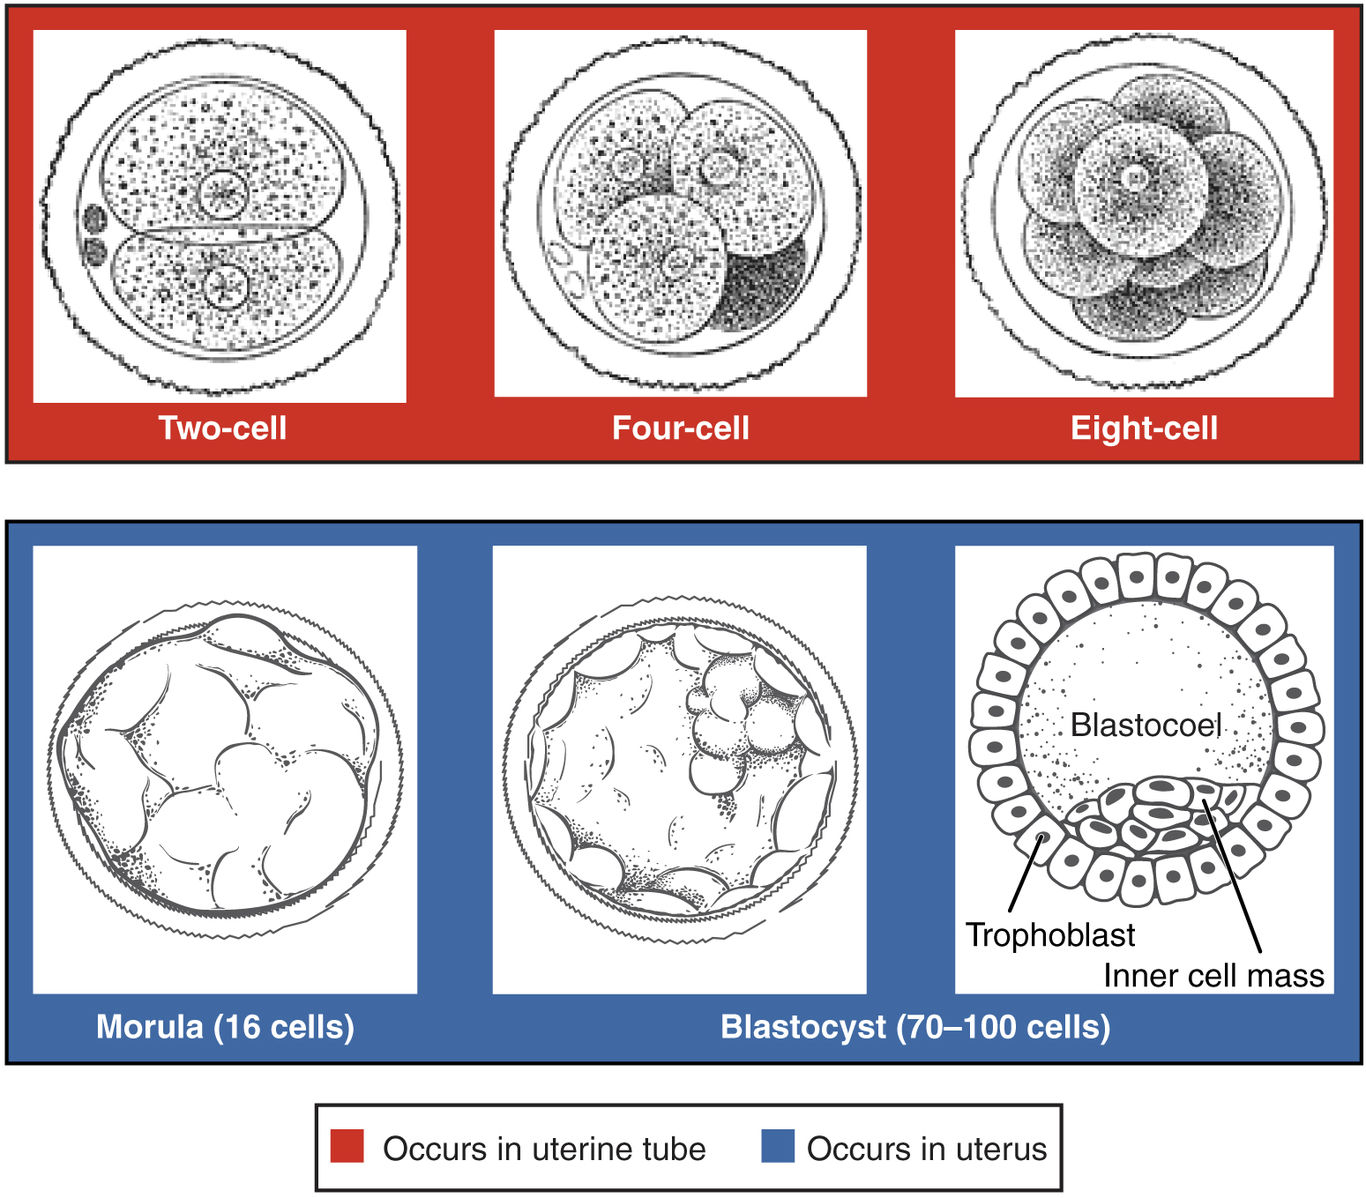 X chromosome inactivation happens during the Blastocyst stage, when the developing organism is only ~70-100 cells. Organisms continue to develop into billions of cells.